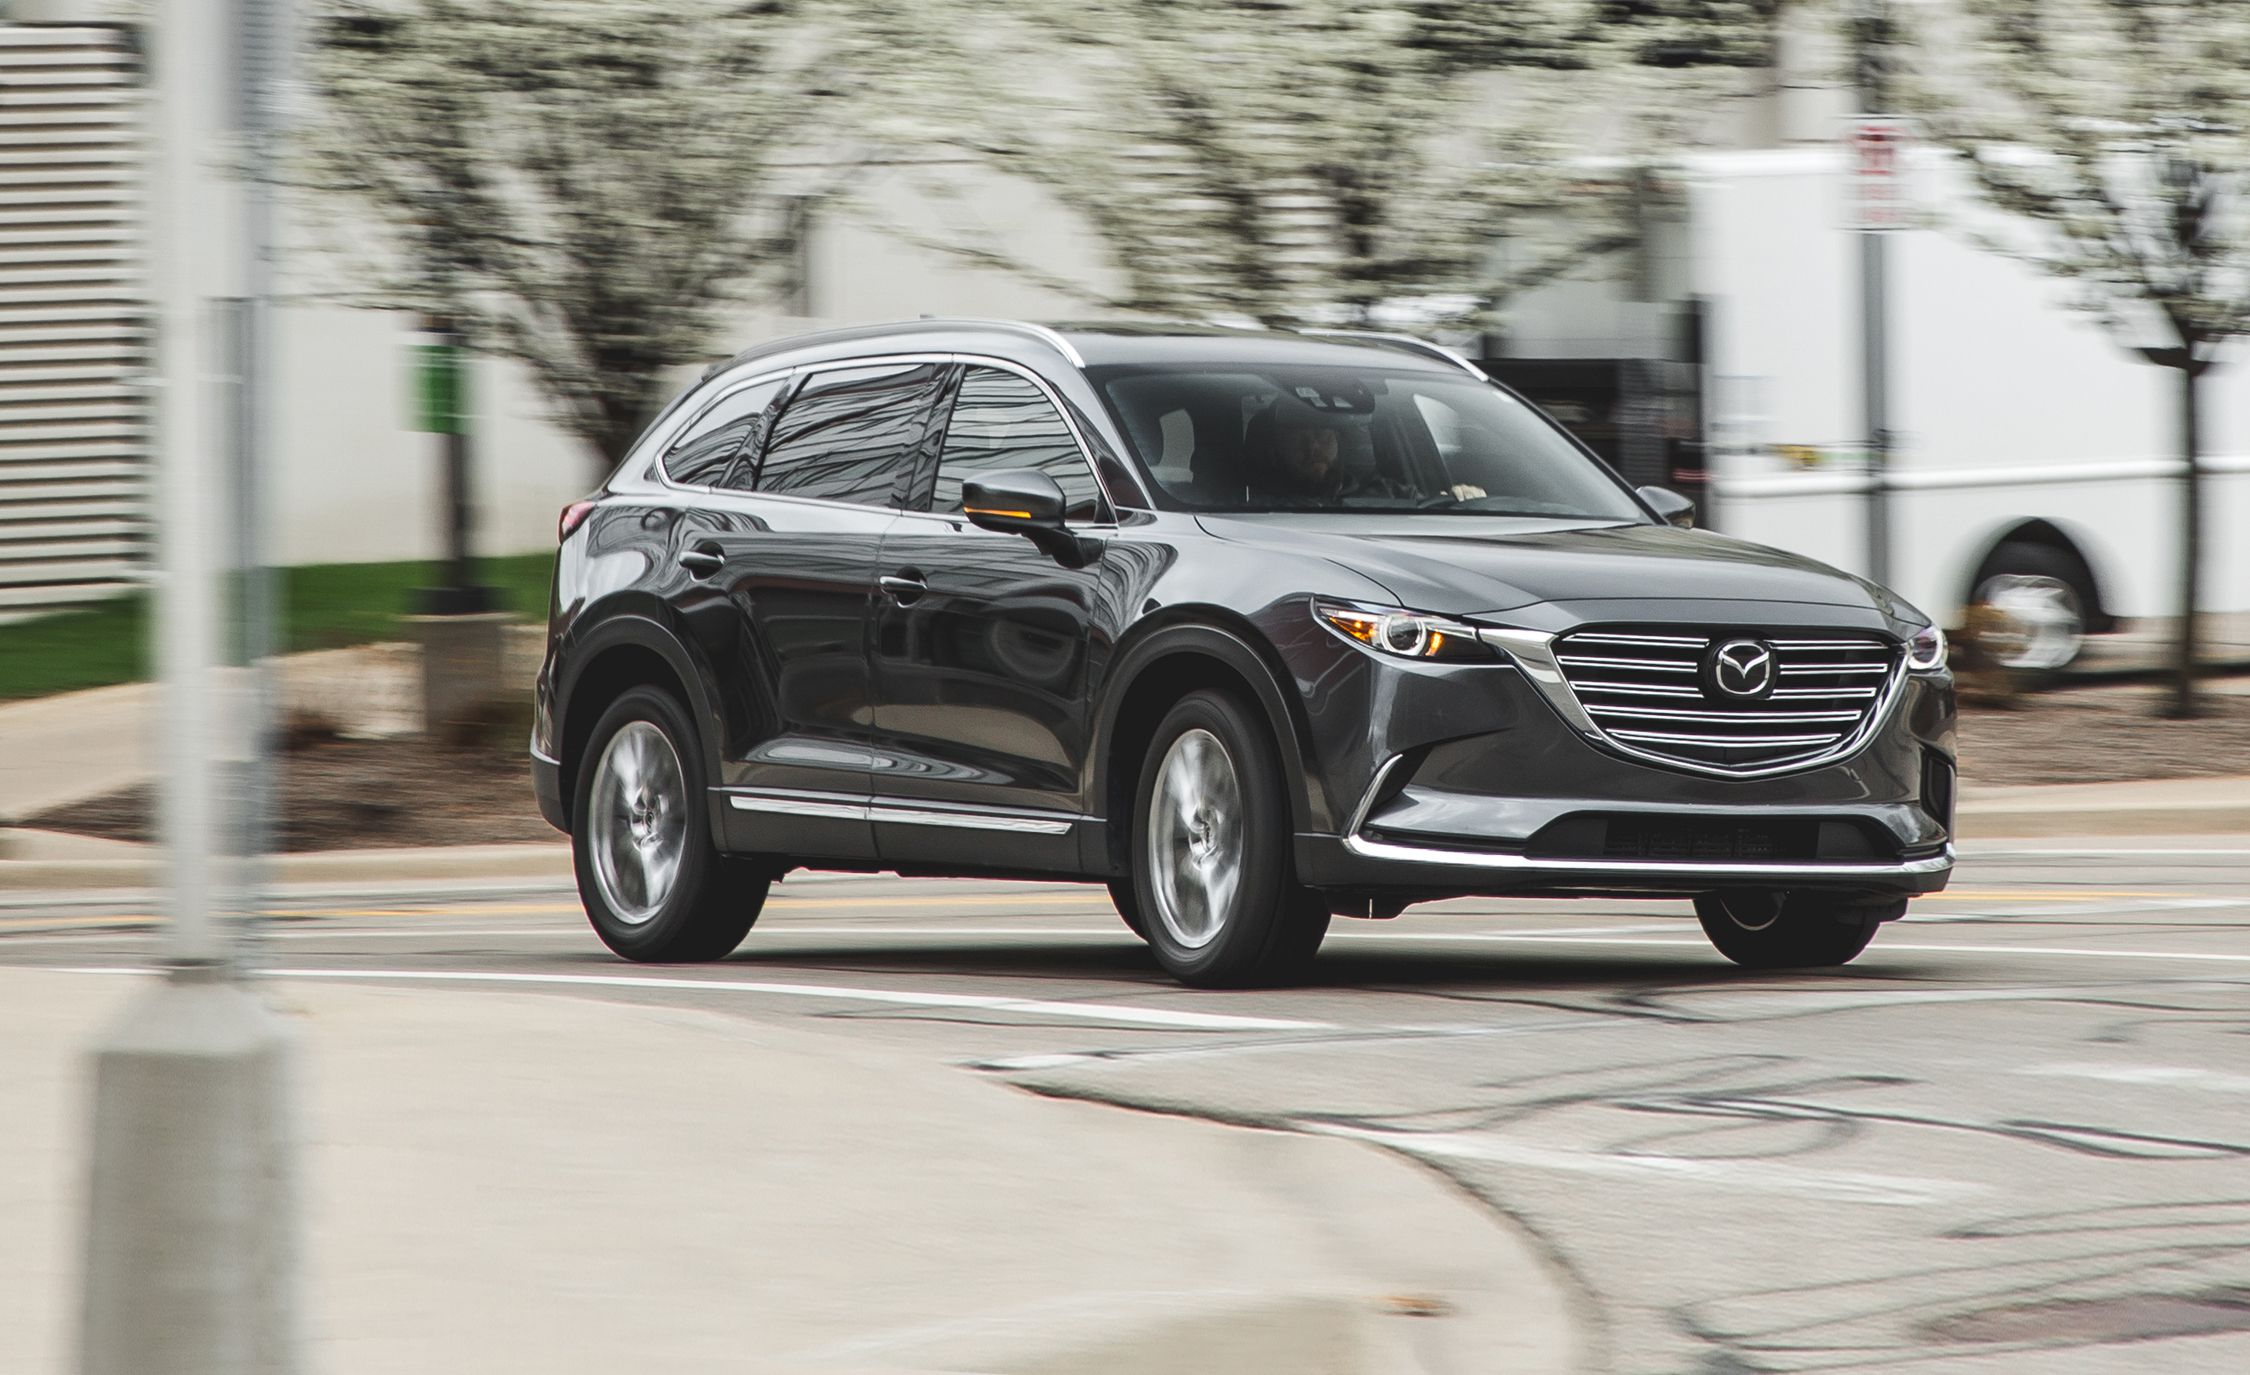 Must Have Items For Cx 9 Emergency Kit Puente Hills Mazda